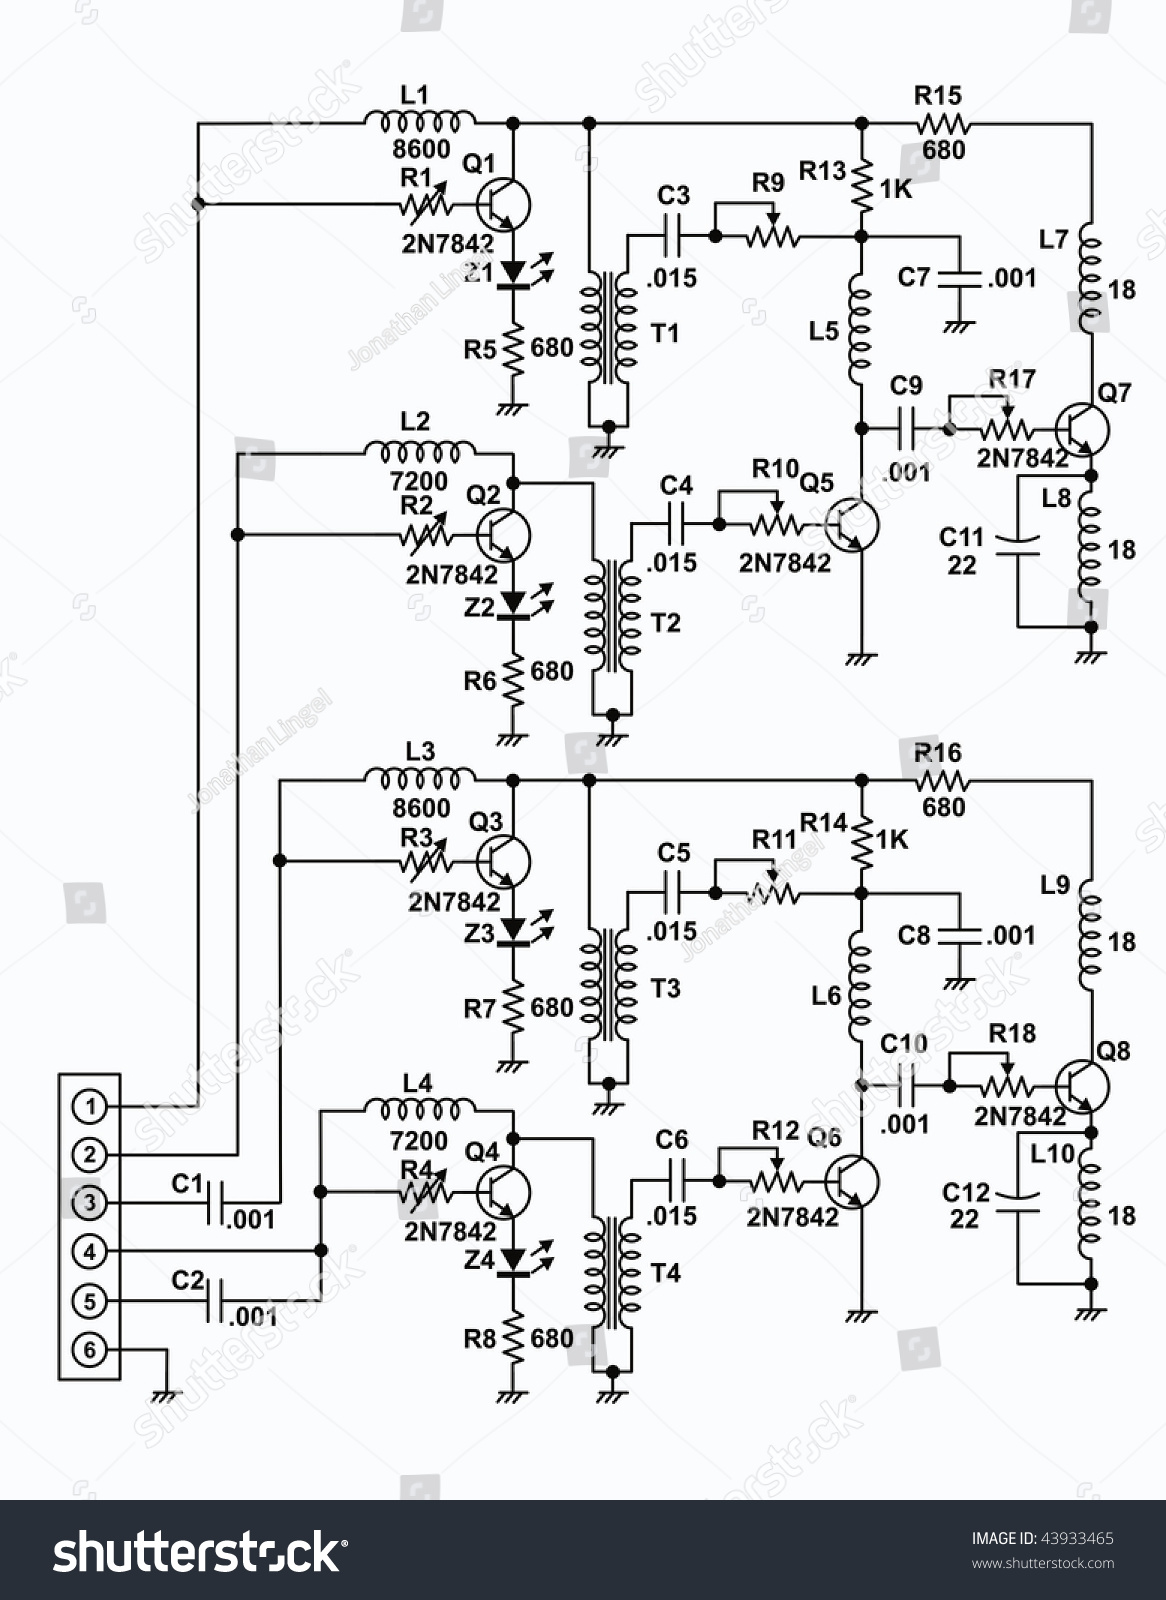 Electrical Schematic Circuits